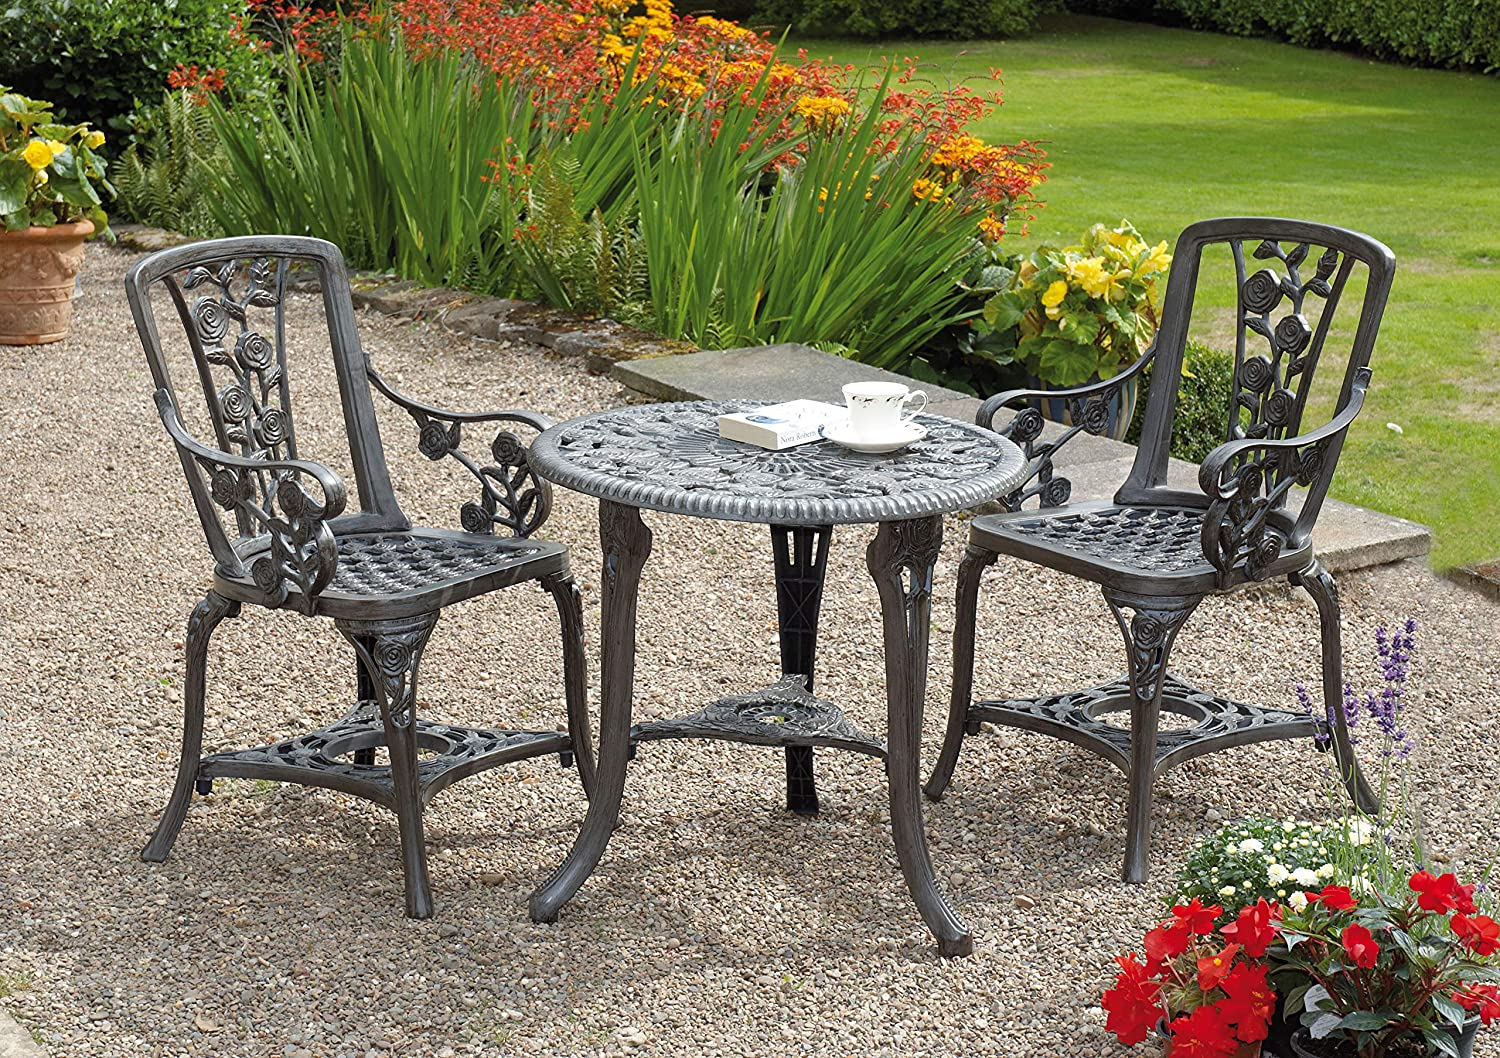 Gablemere 2 Seater Plastic Rose Design Patio Set With Round Bistro Table In Gun Metal Grey Finish Amazon Co Uk Garden Outdoors